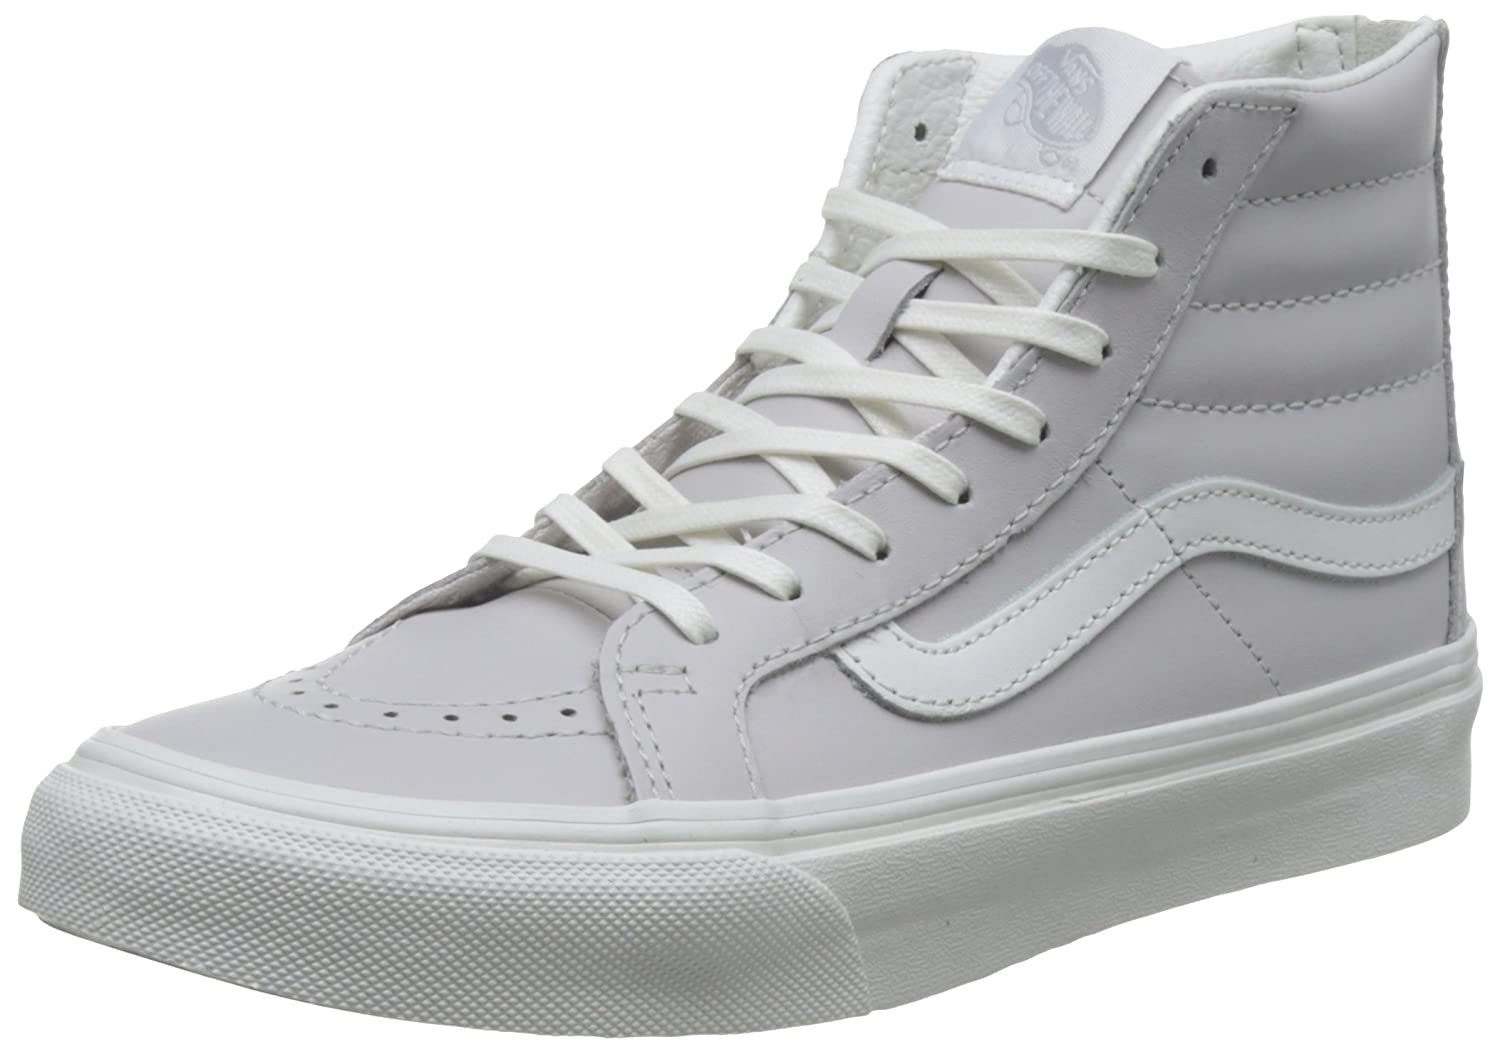 Vans UA SK8 Hi Slim Zip Sneaker, ((Leather) Wind Chime/Blan), 10.0